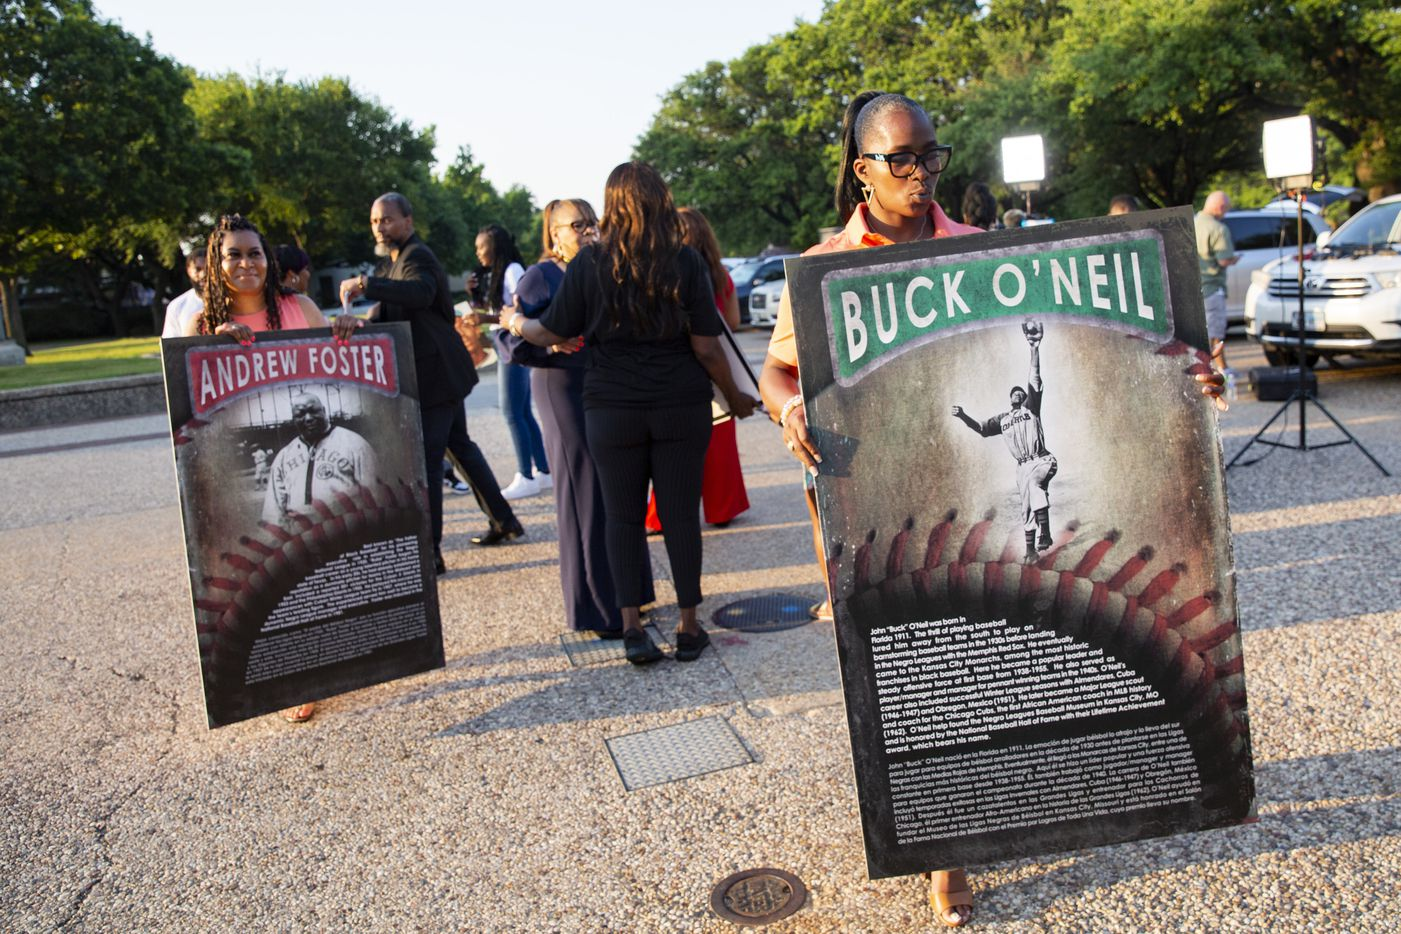 Sherry Blair (right) holds a Buck O'Neil sign thats part of the Negro League Baseball exhibit on Friday, June 18, 2021, during a media preview at Fair Park in Dallas. The exhibit opens Saturday as part of the Juneteenth Celebration in Fair Park. (Juan Figueroa/The Dallas Morning News)